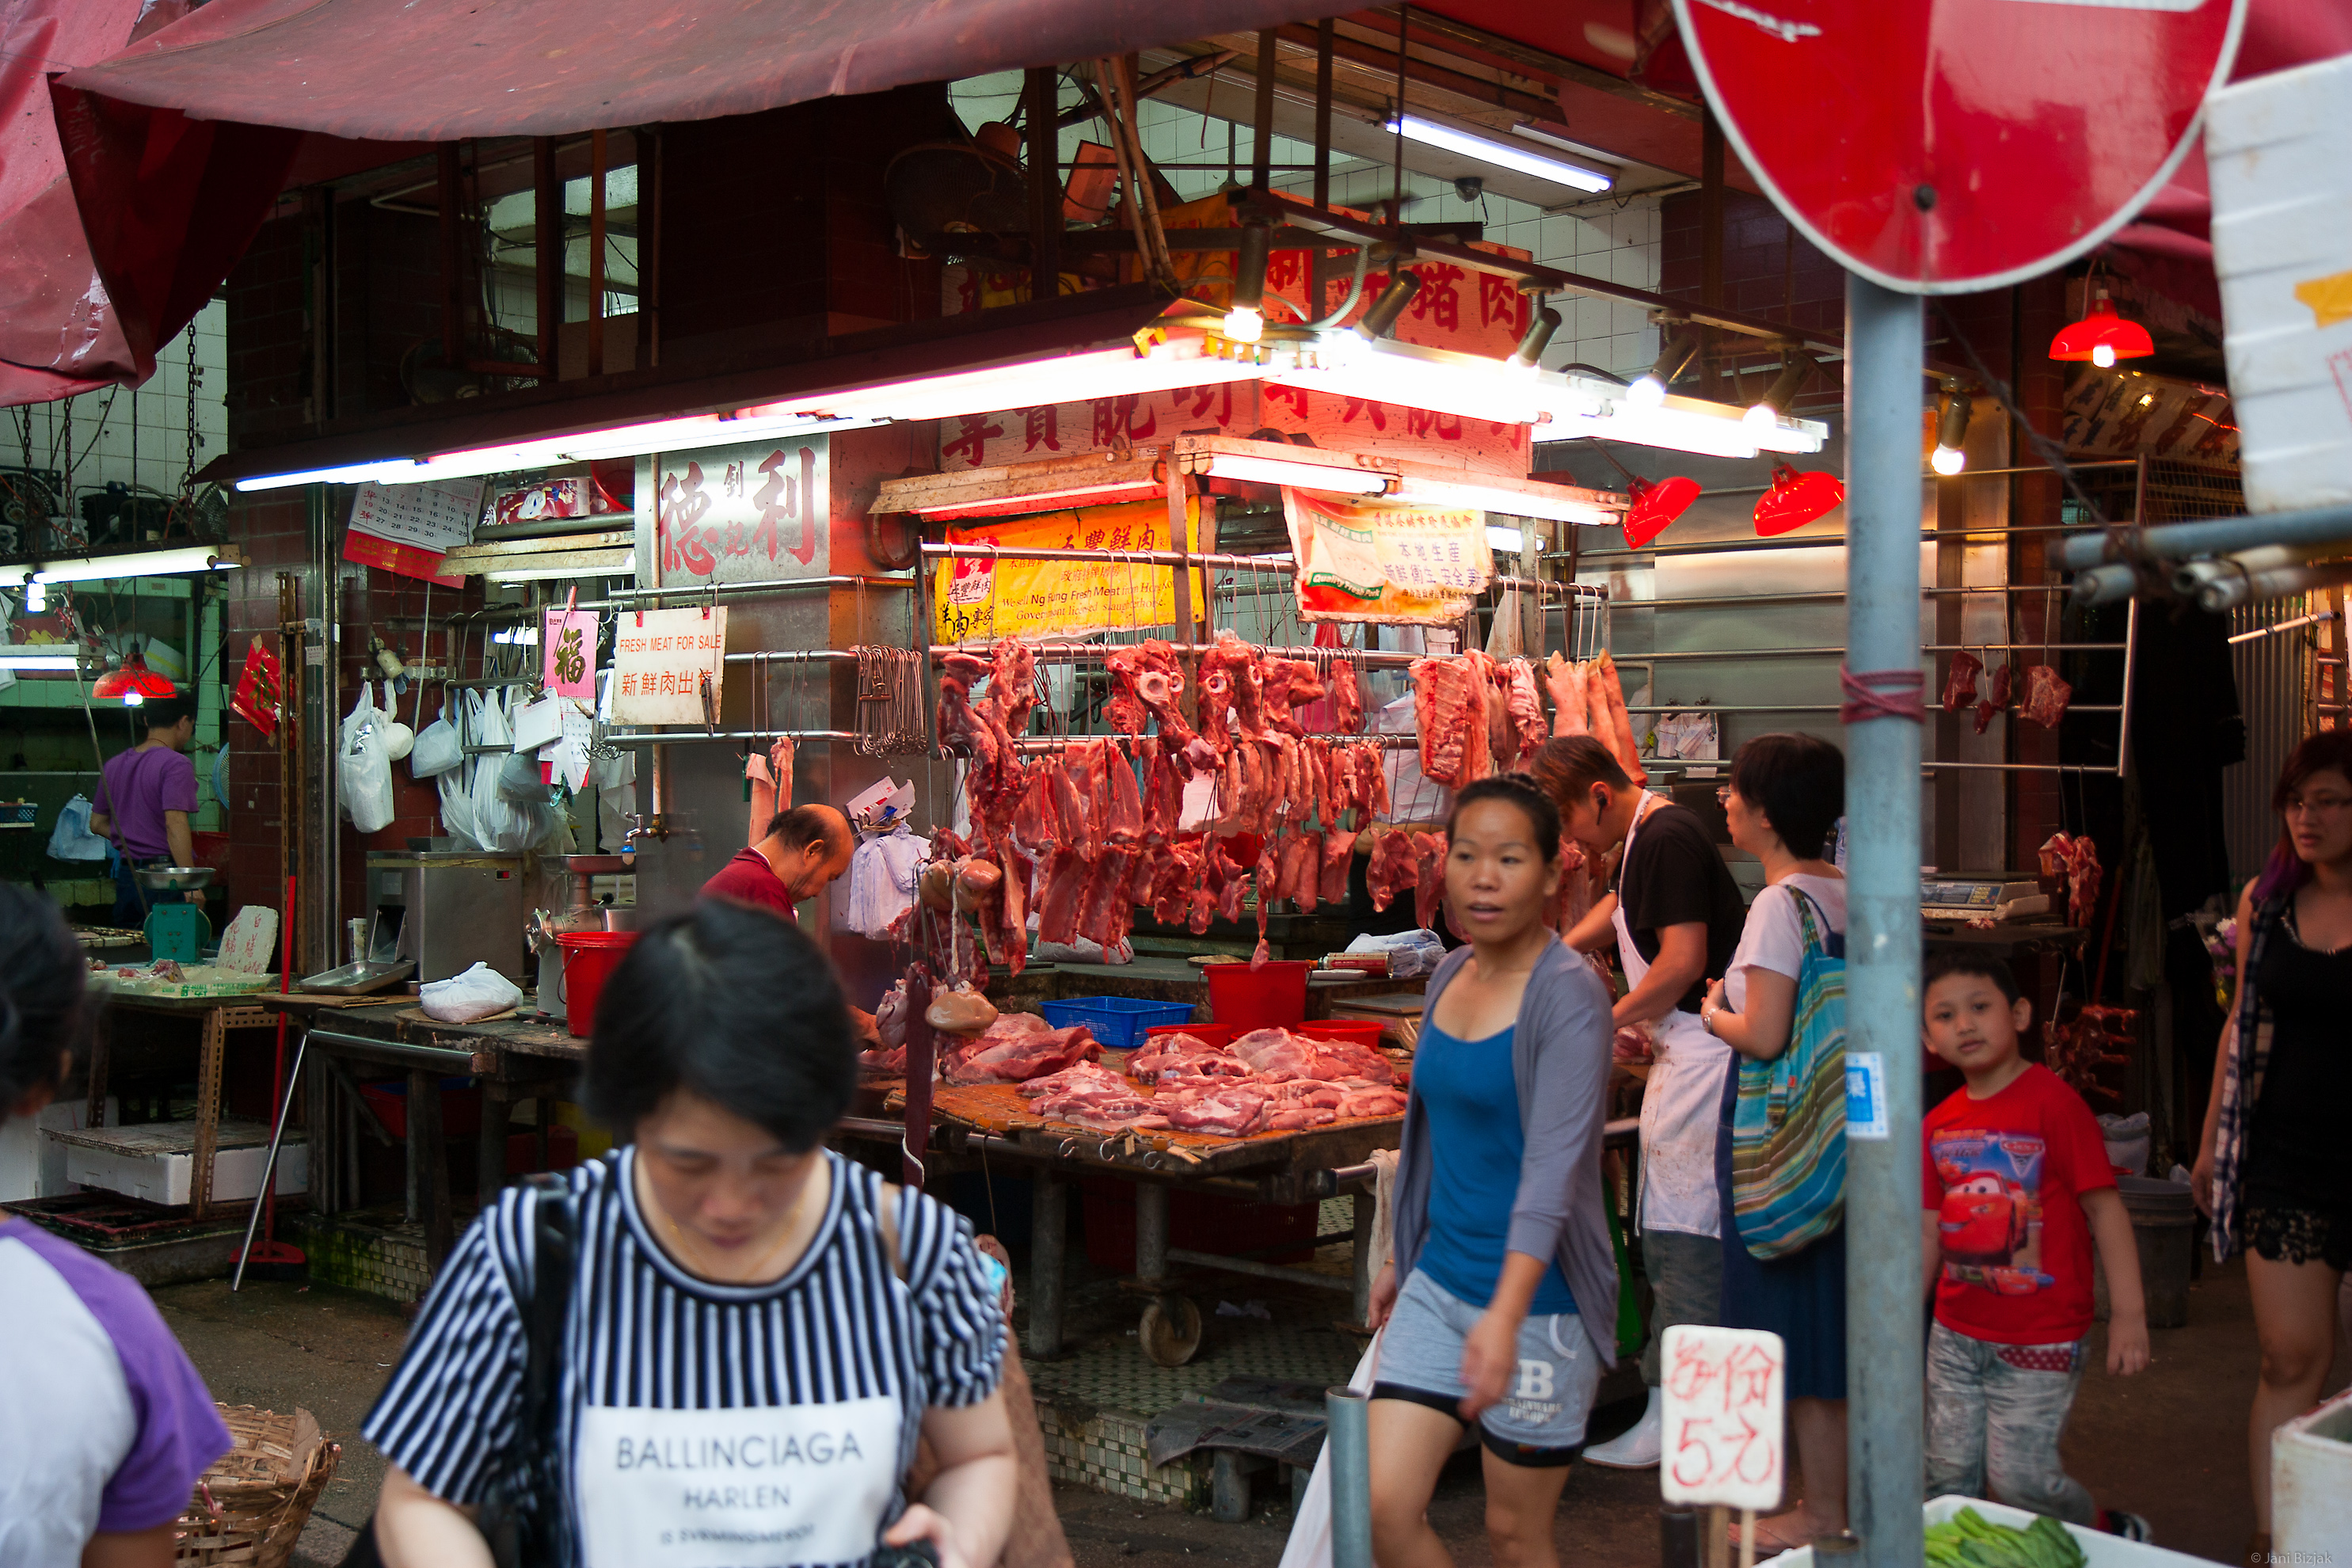 Stalls in the market